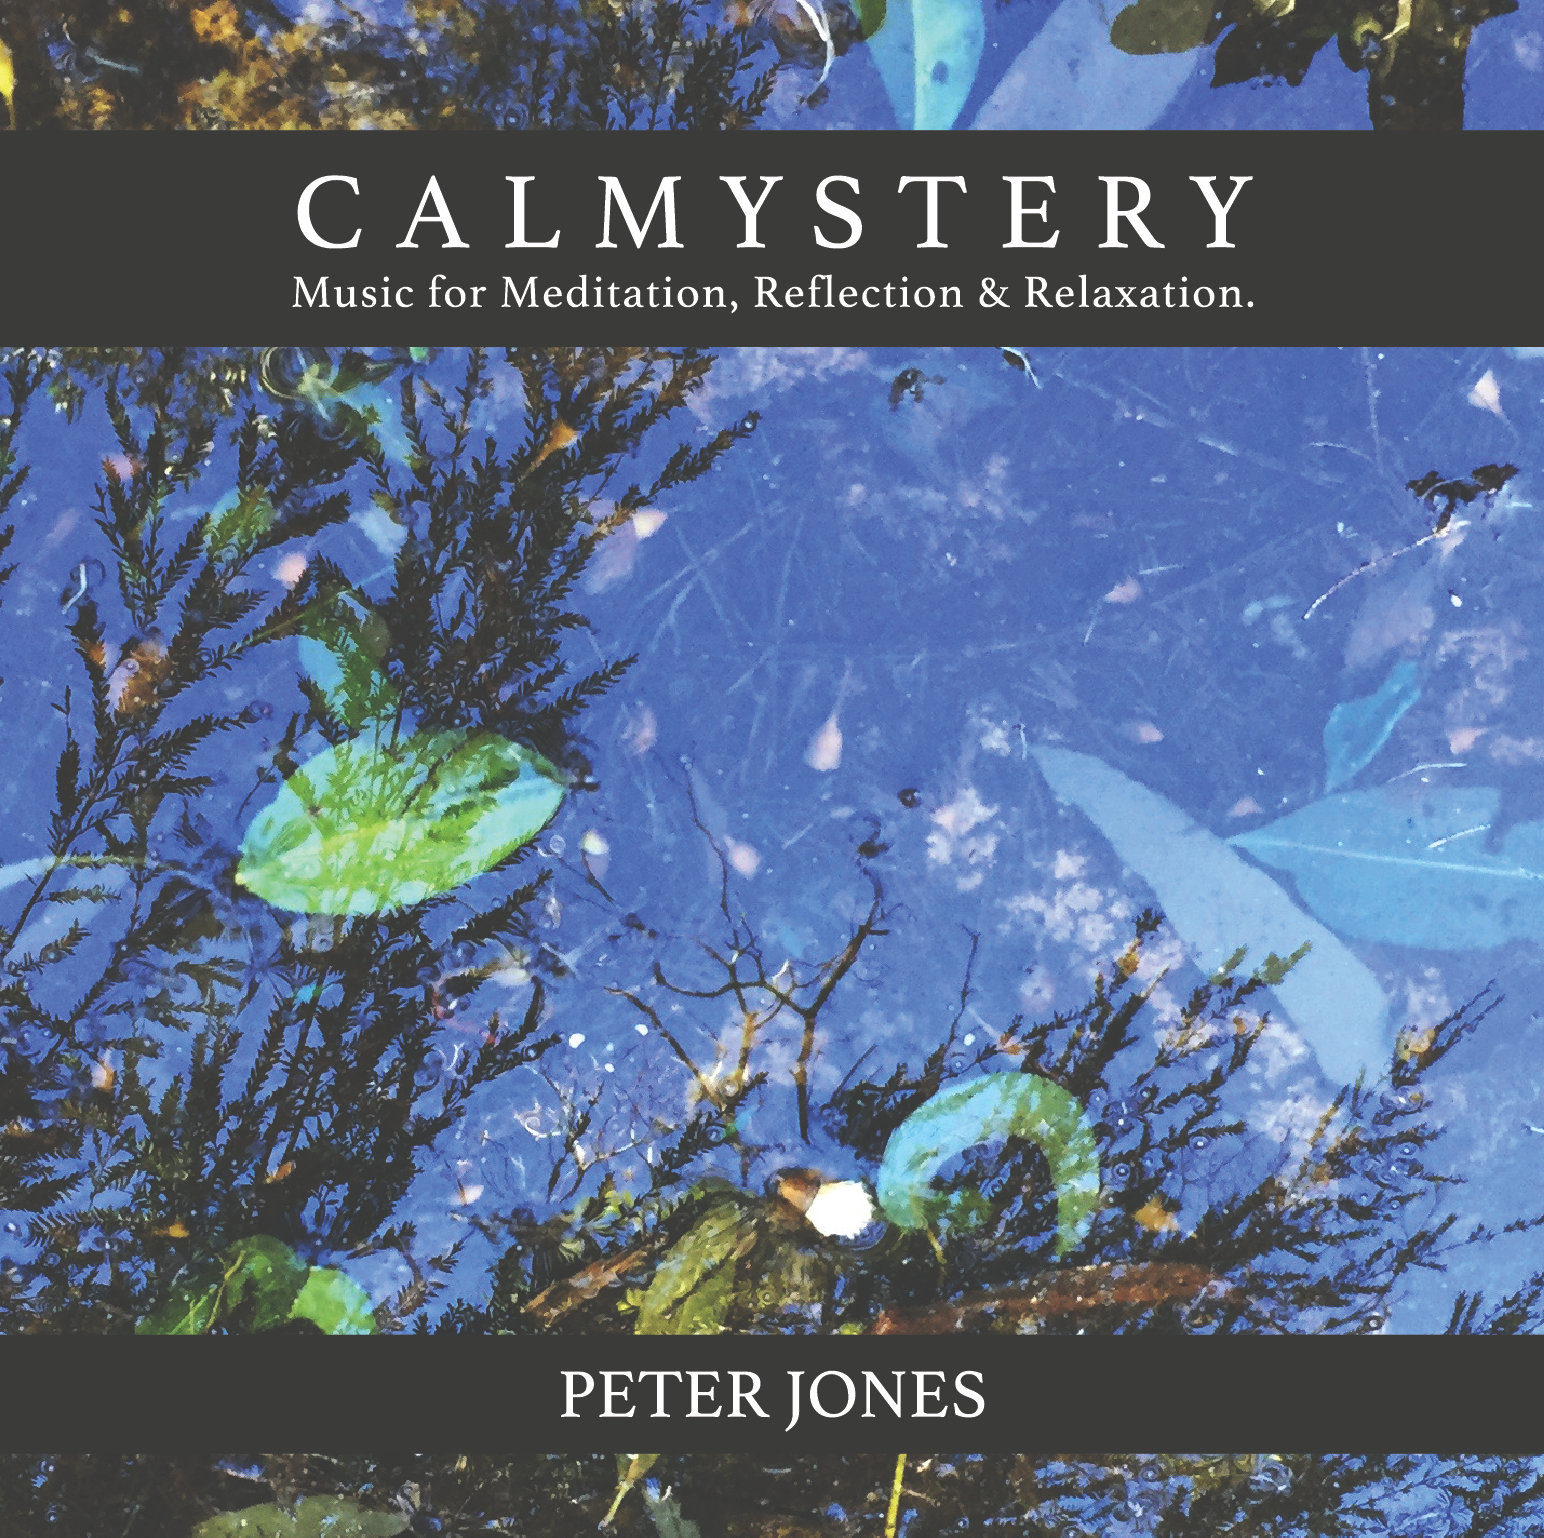 Calmystery Album Cover, Peter Jones 2017